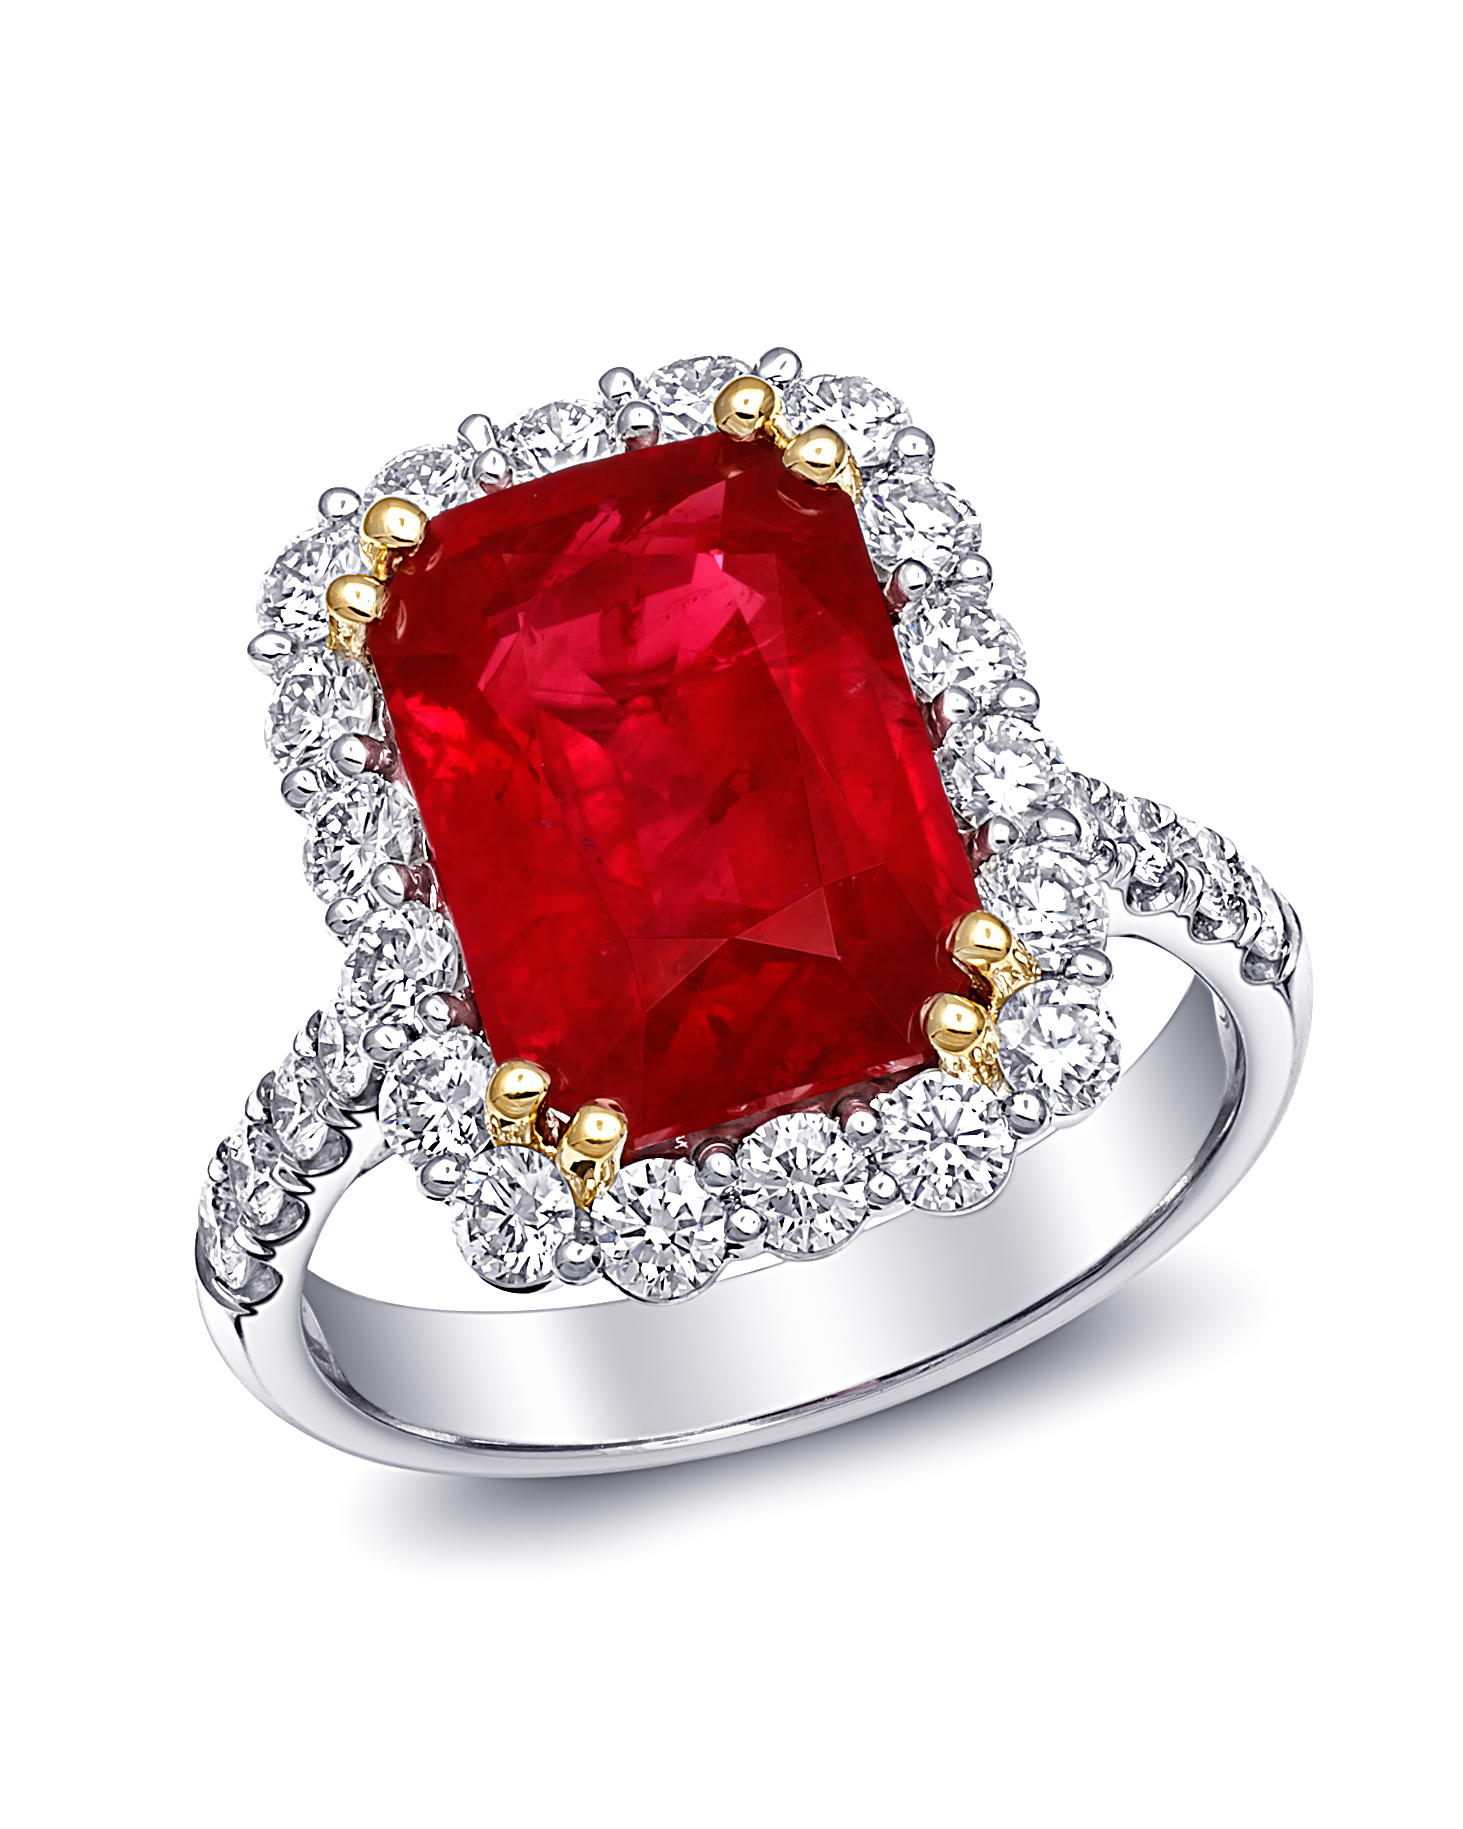 coast-diamond-ruby-engagement-ring-emerald-cut-halo-0816.jpg